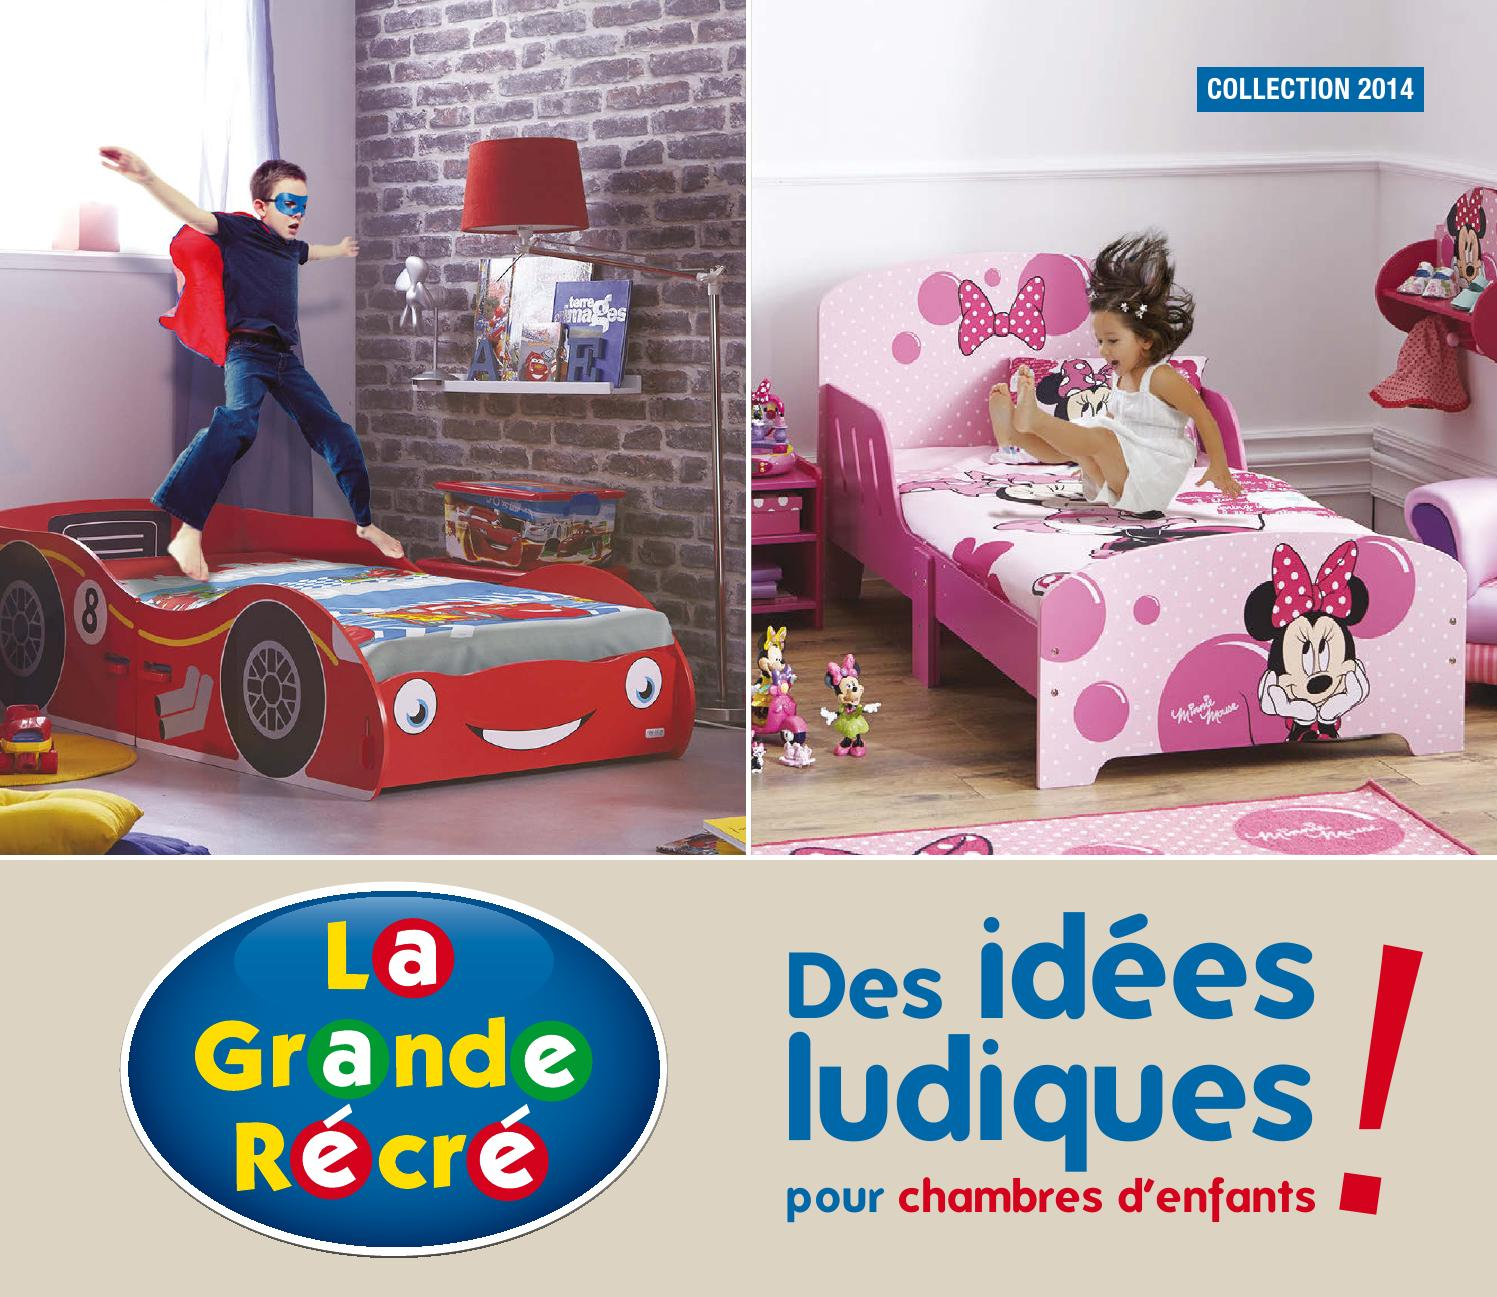 Catalogue La Grande Recre 2014 By Joe Monroe Issuu